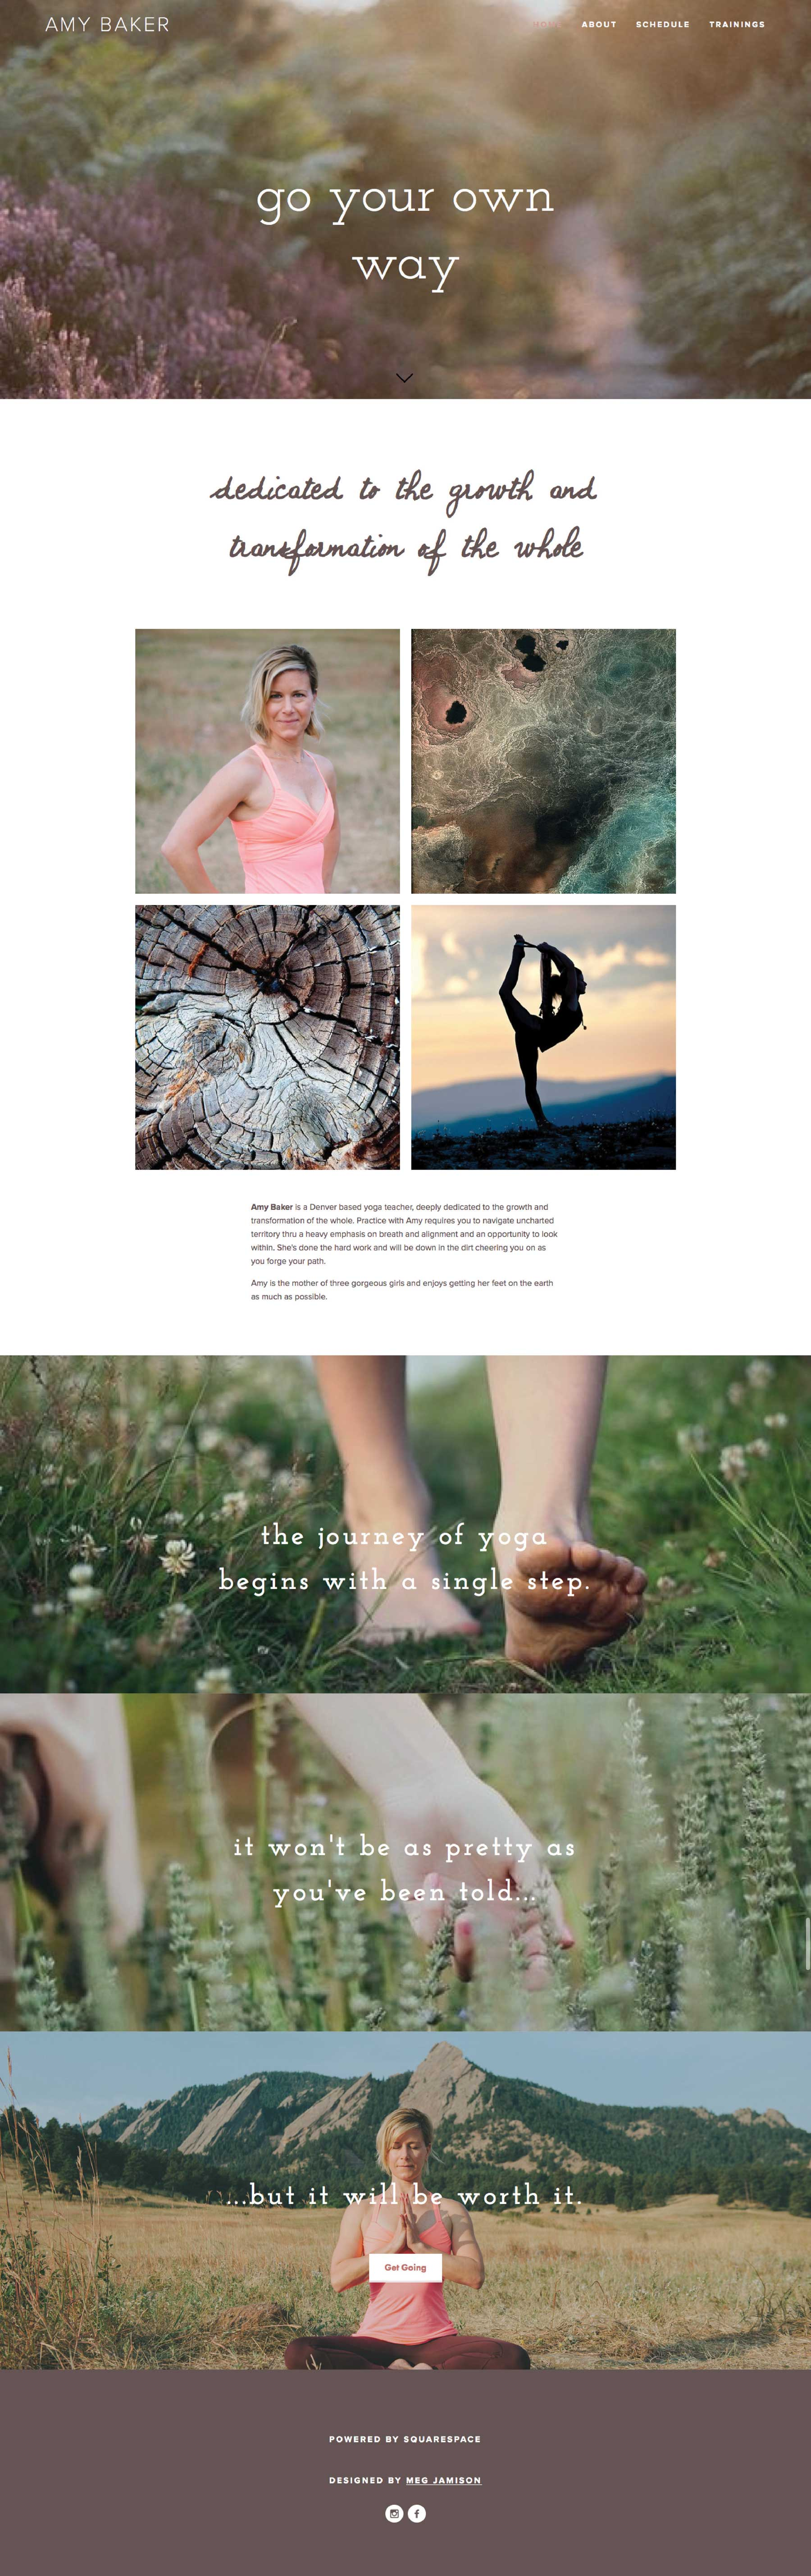 amy-baker-web-layout-home-page-final.jpg